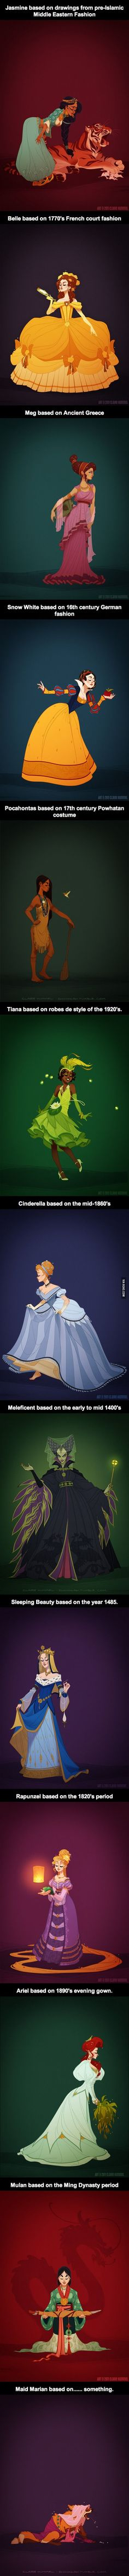 Disney Princesses Based On Historical Fashion. This is really cool actually